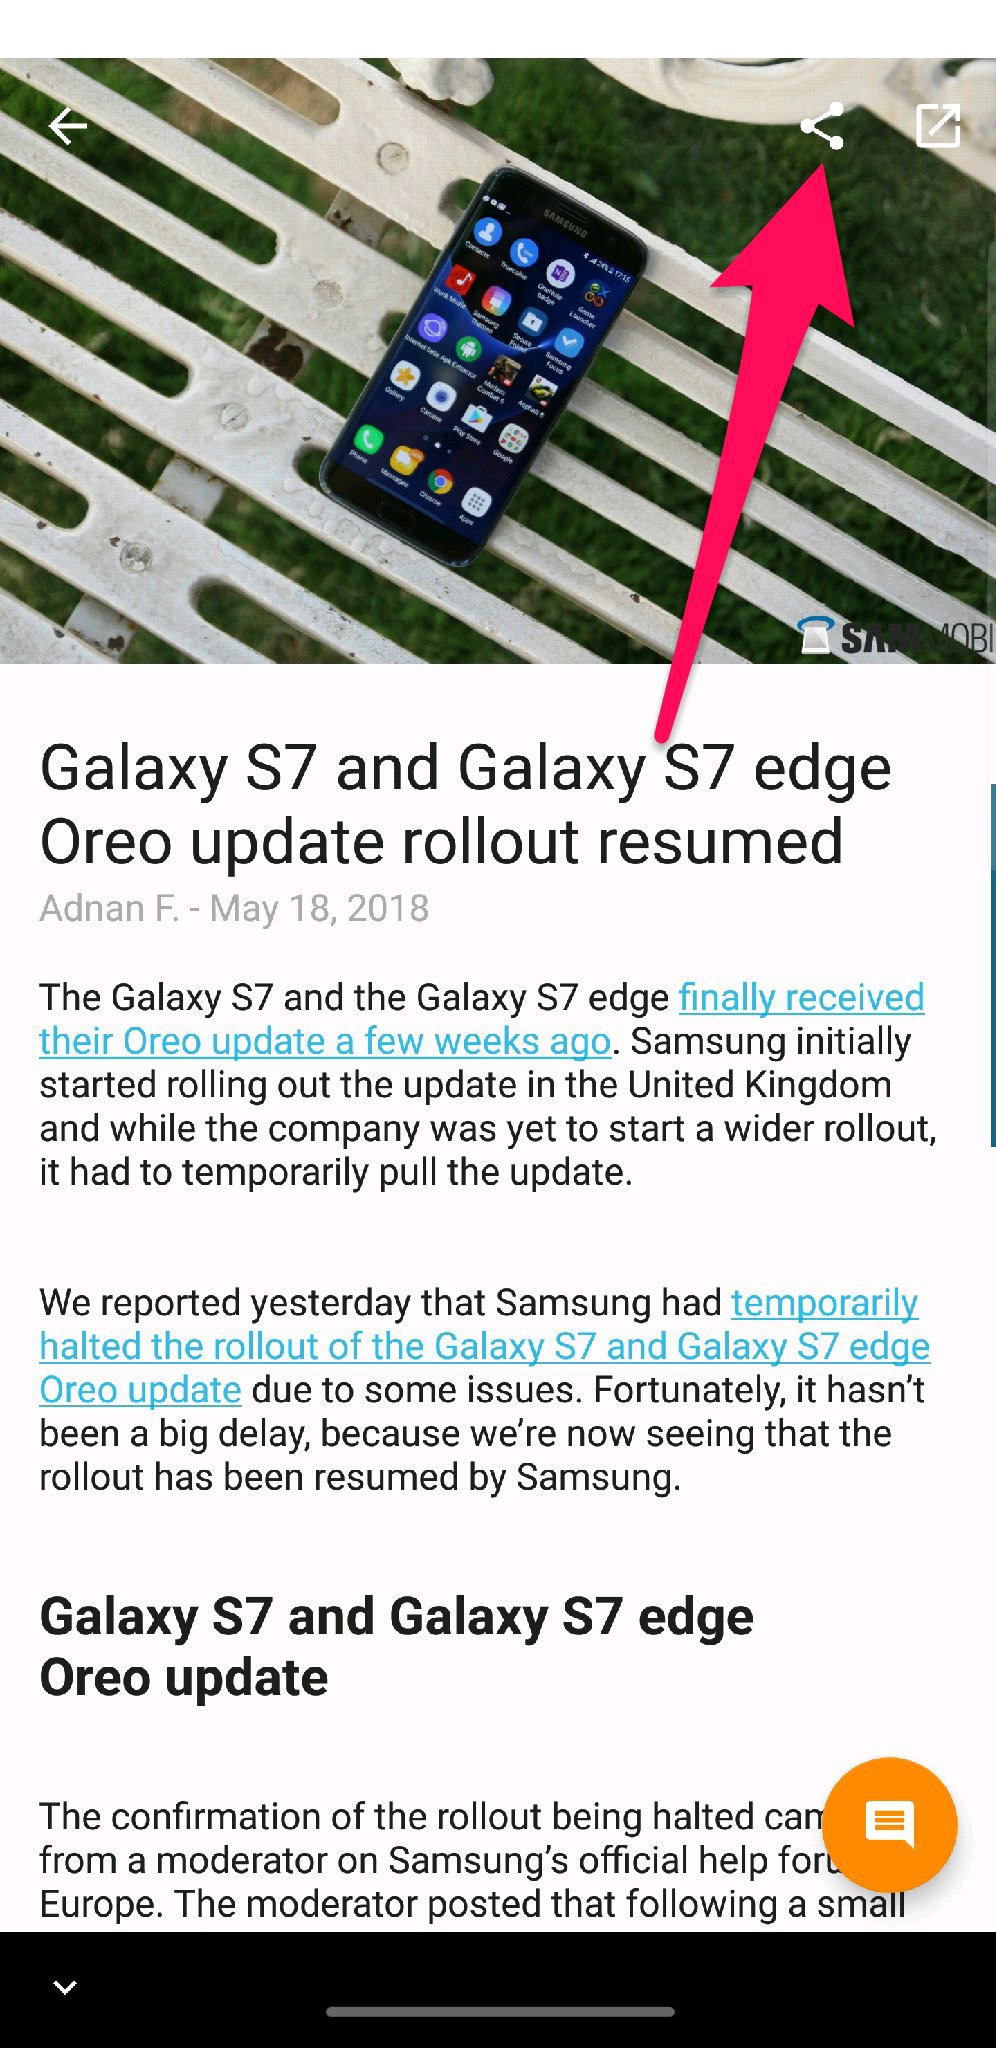 S7/S7e Oreo Update resumes in the UK - Samsung Global US